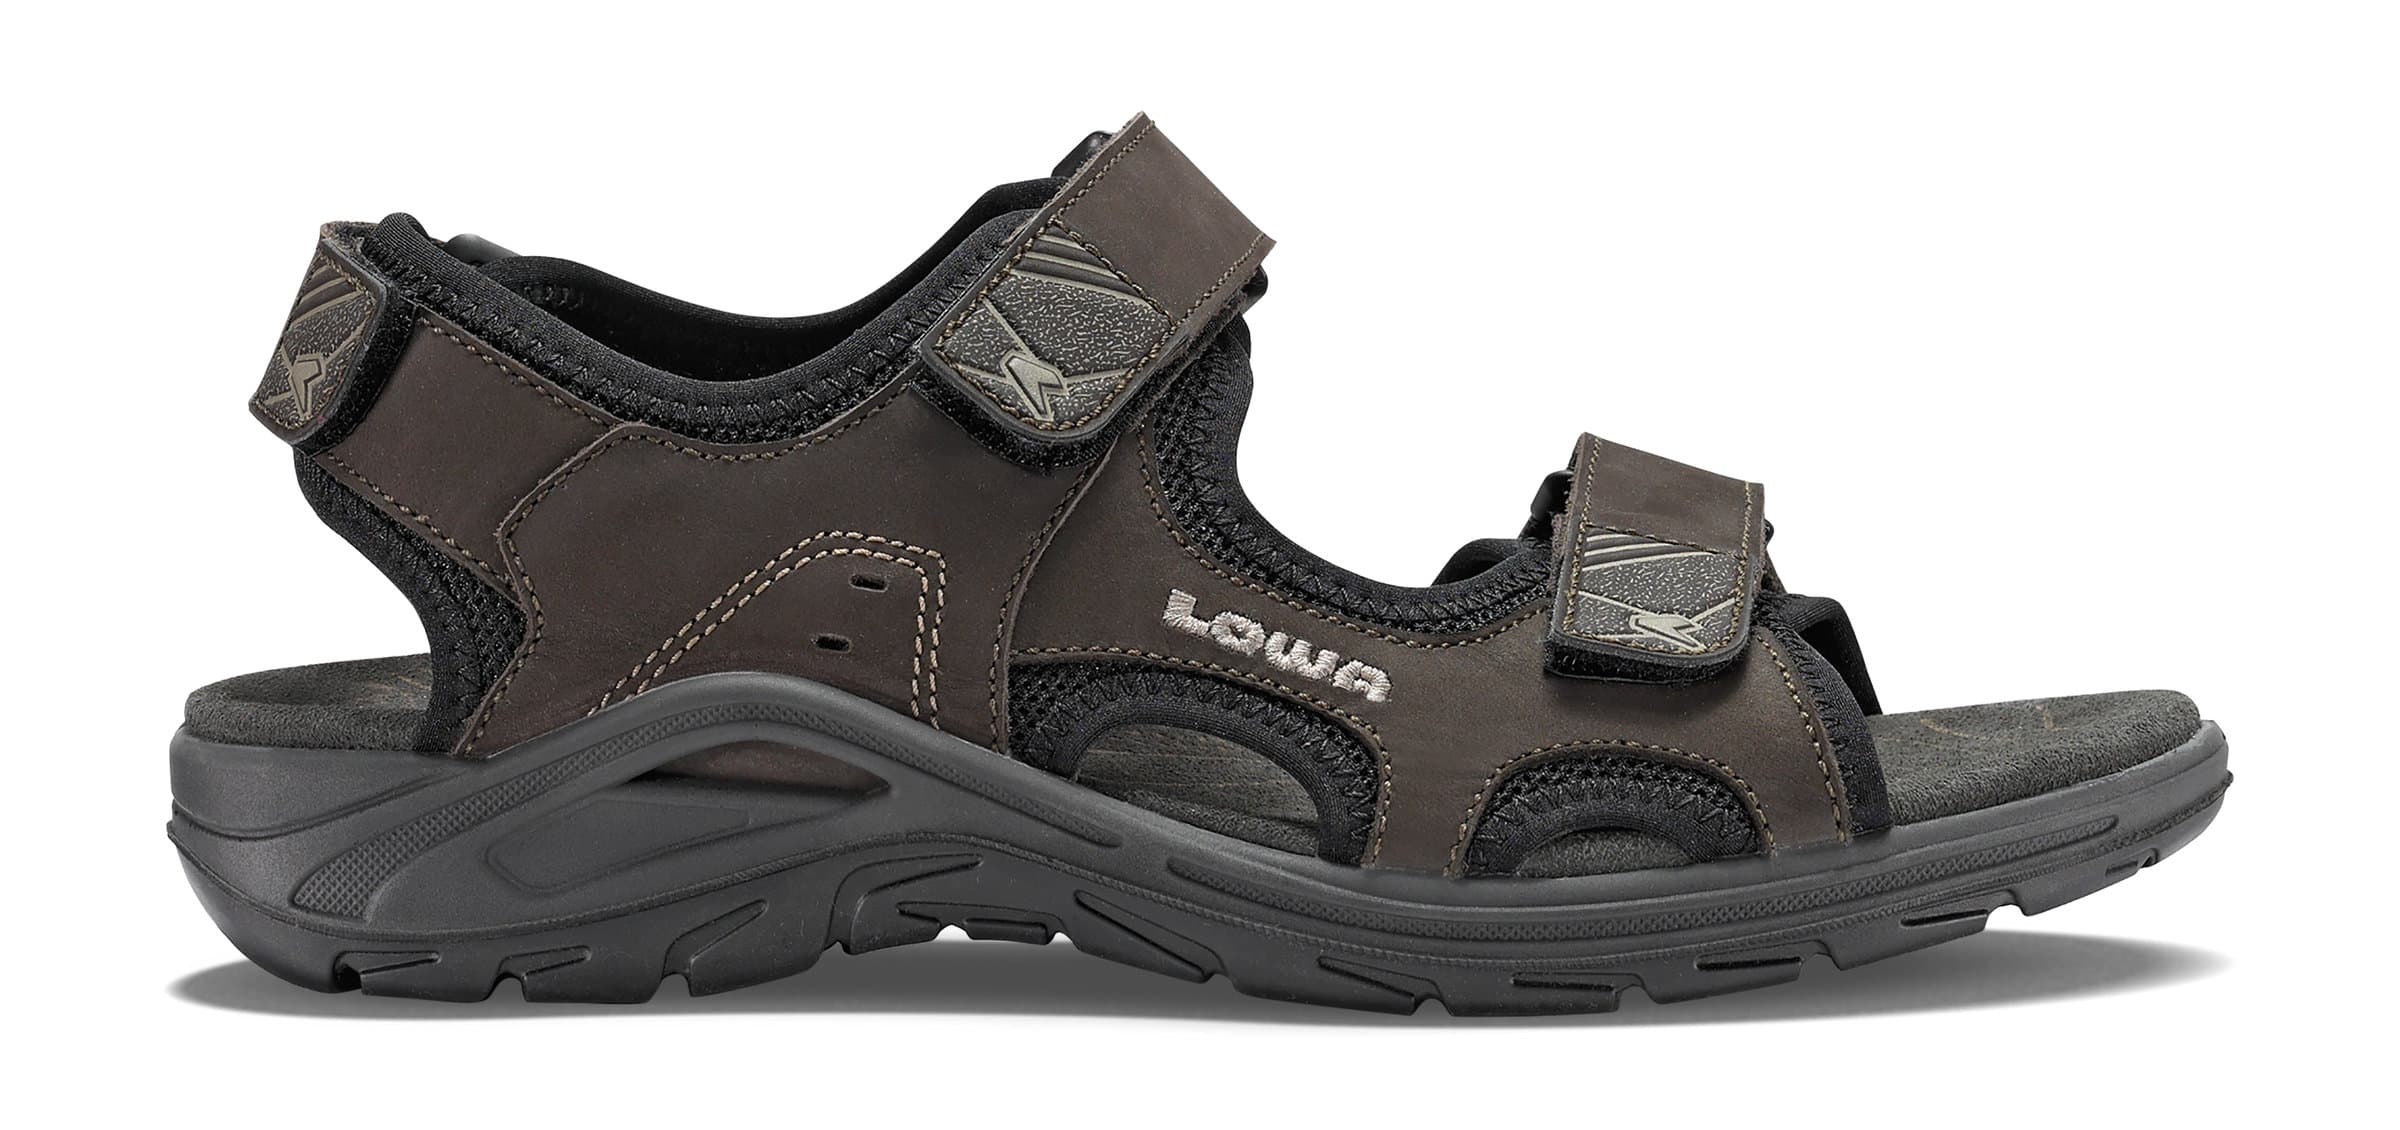 Lowa Urbano Sandales pour homme